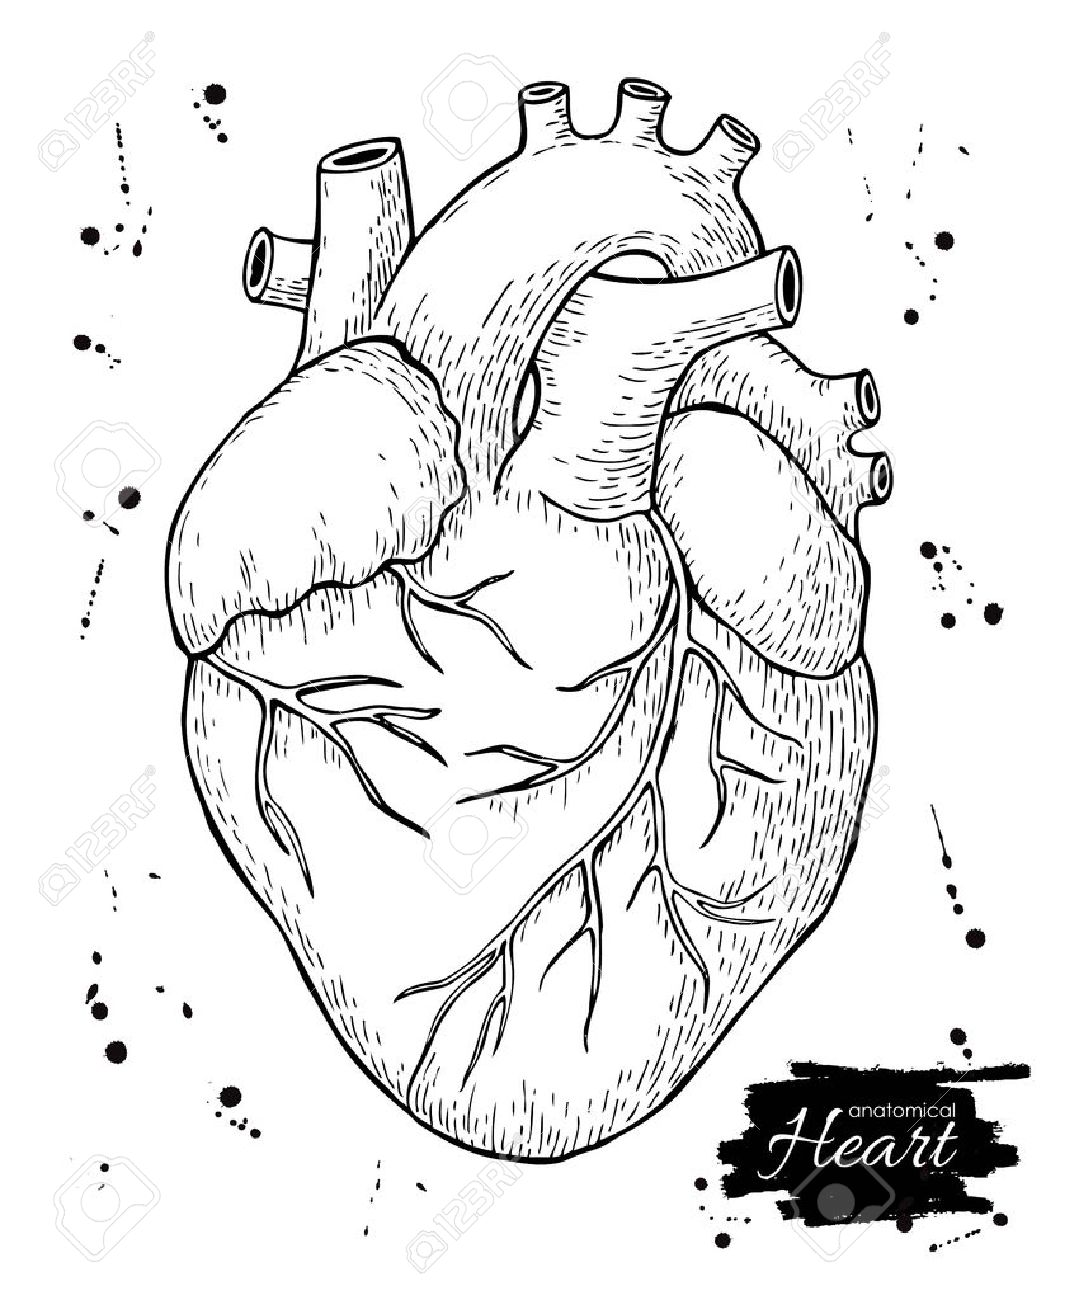 1079x1300 Anatomical Human Heart. Engraved Detailed Illustration. Hand